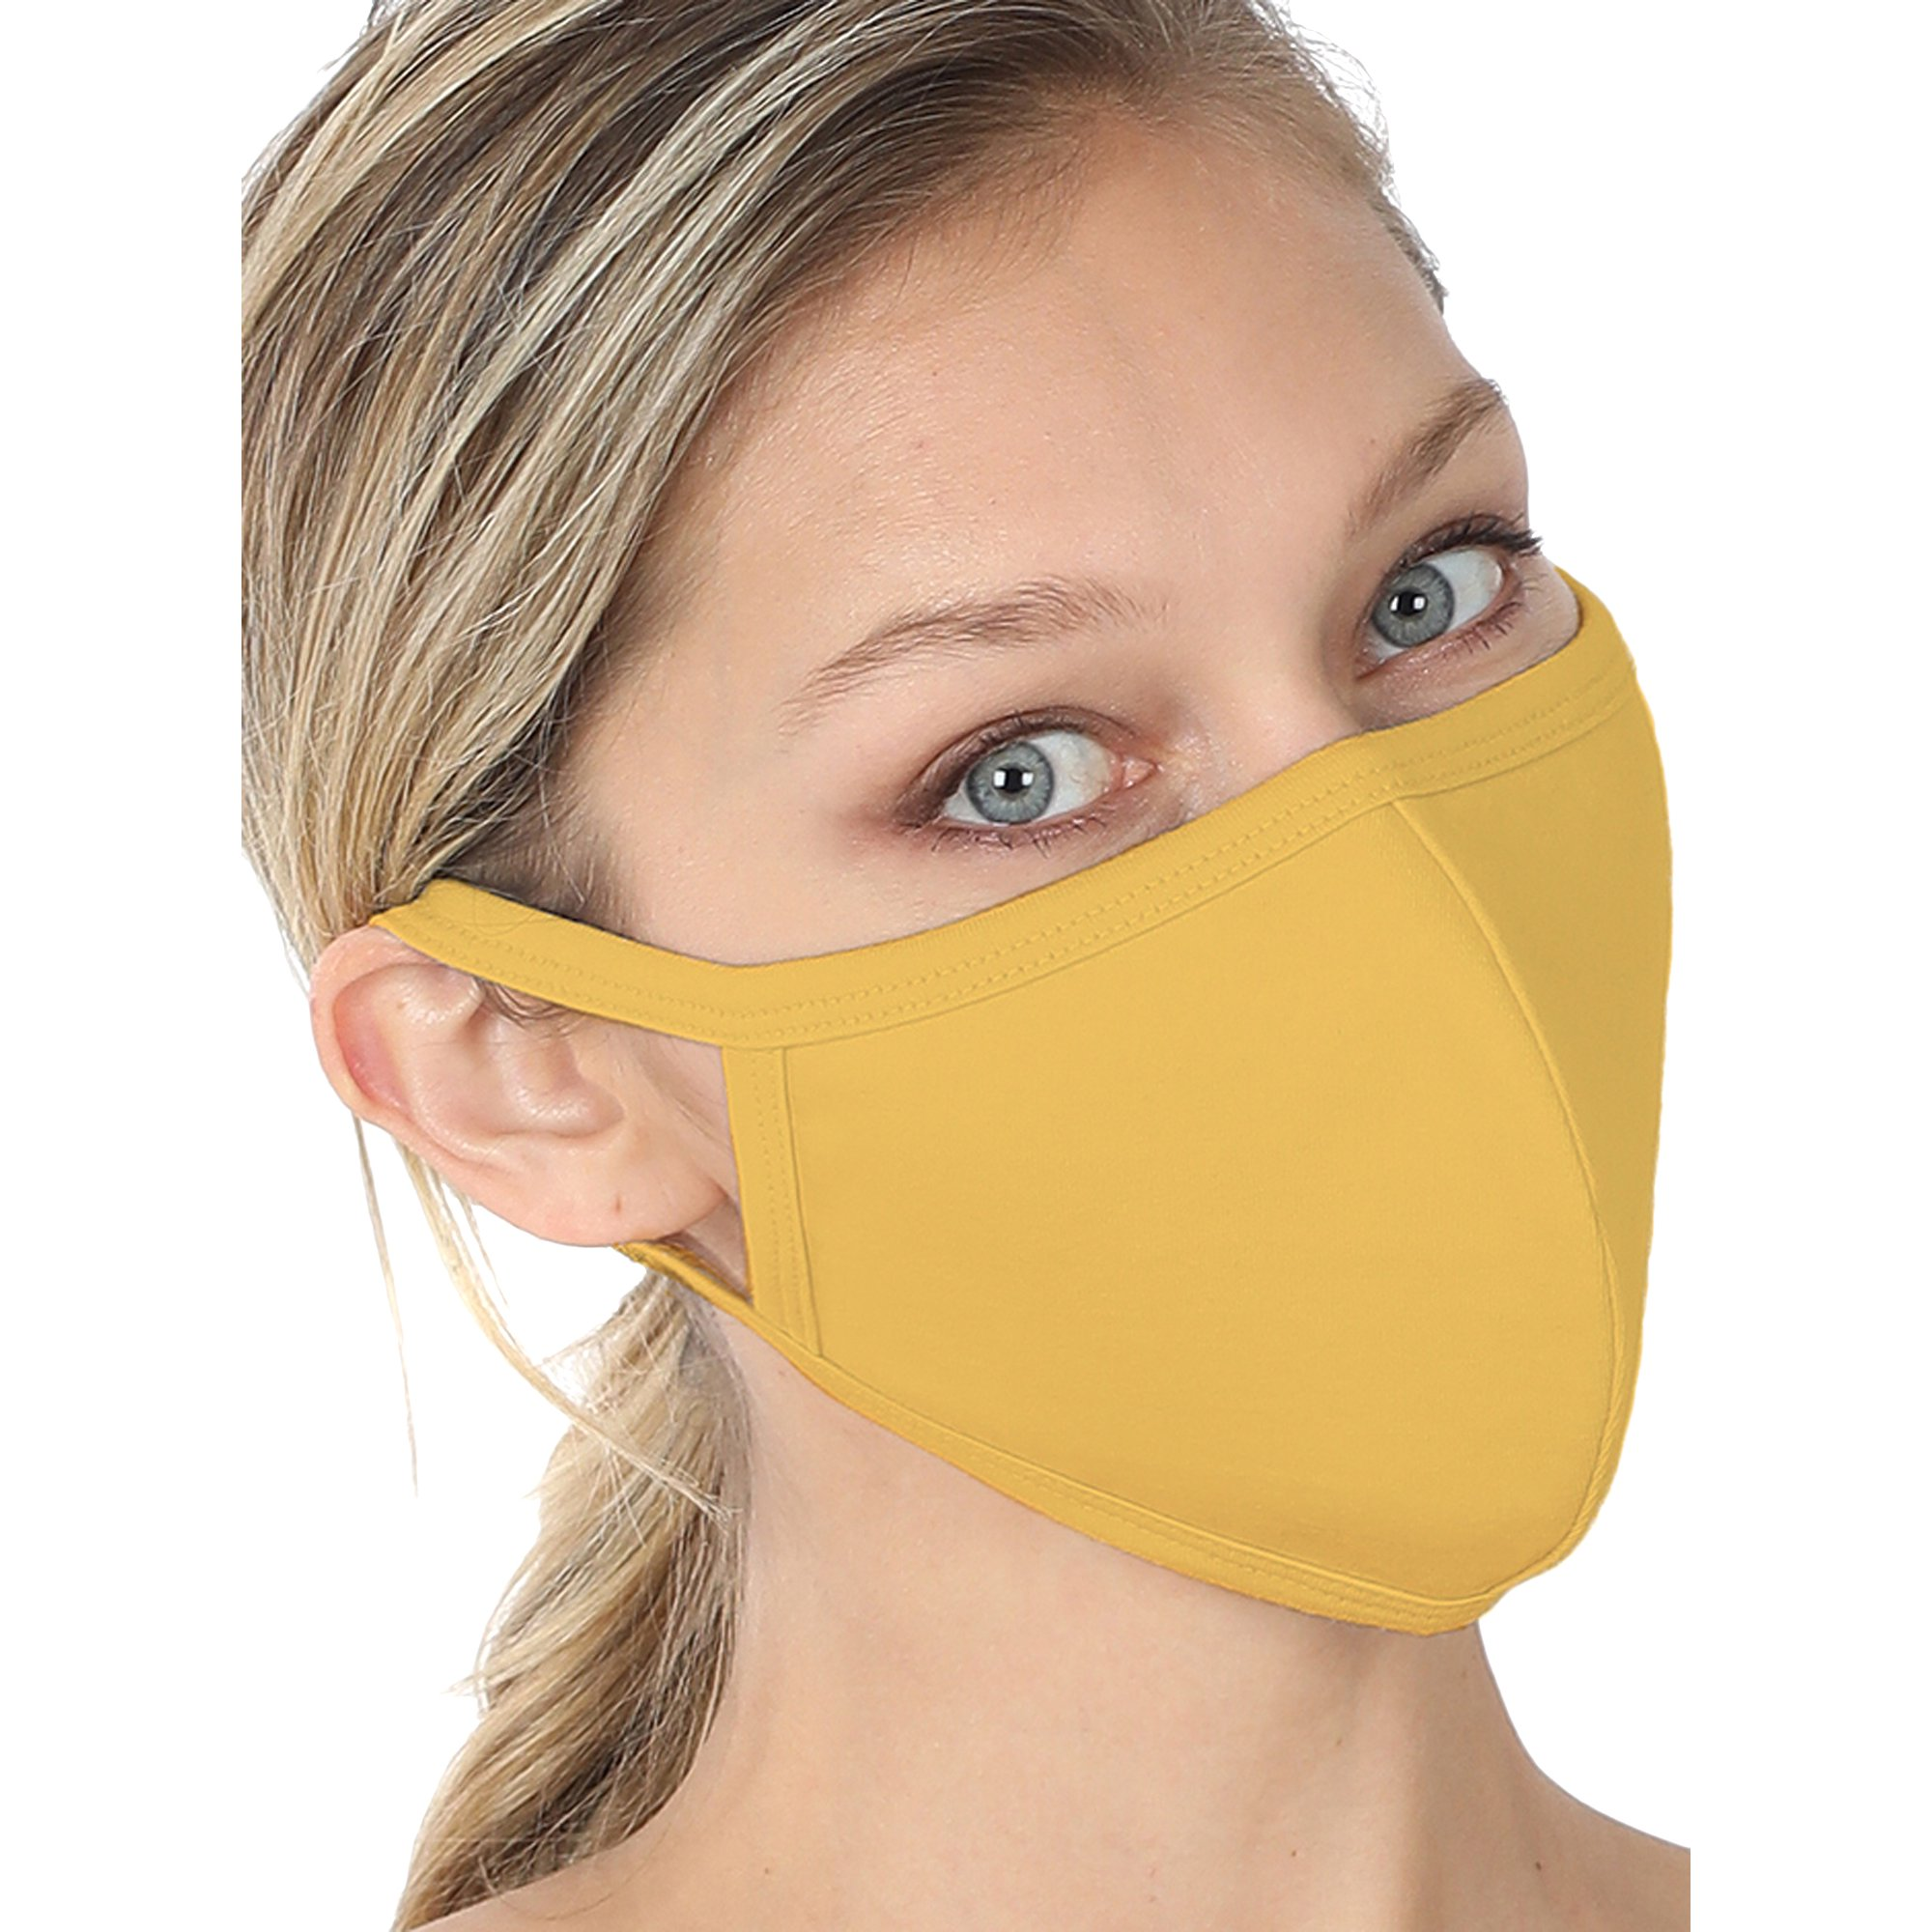 Zenana Fashion Washable Soft Cotton Adults Unisex One Size Face Covering Mask Lt Mustard Single Walmart Com Walmart Com